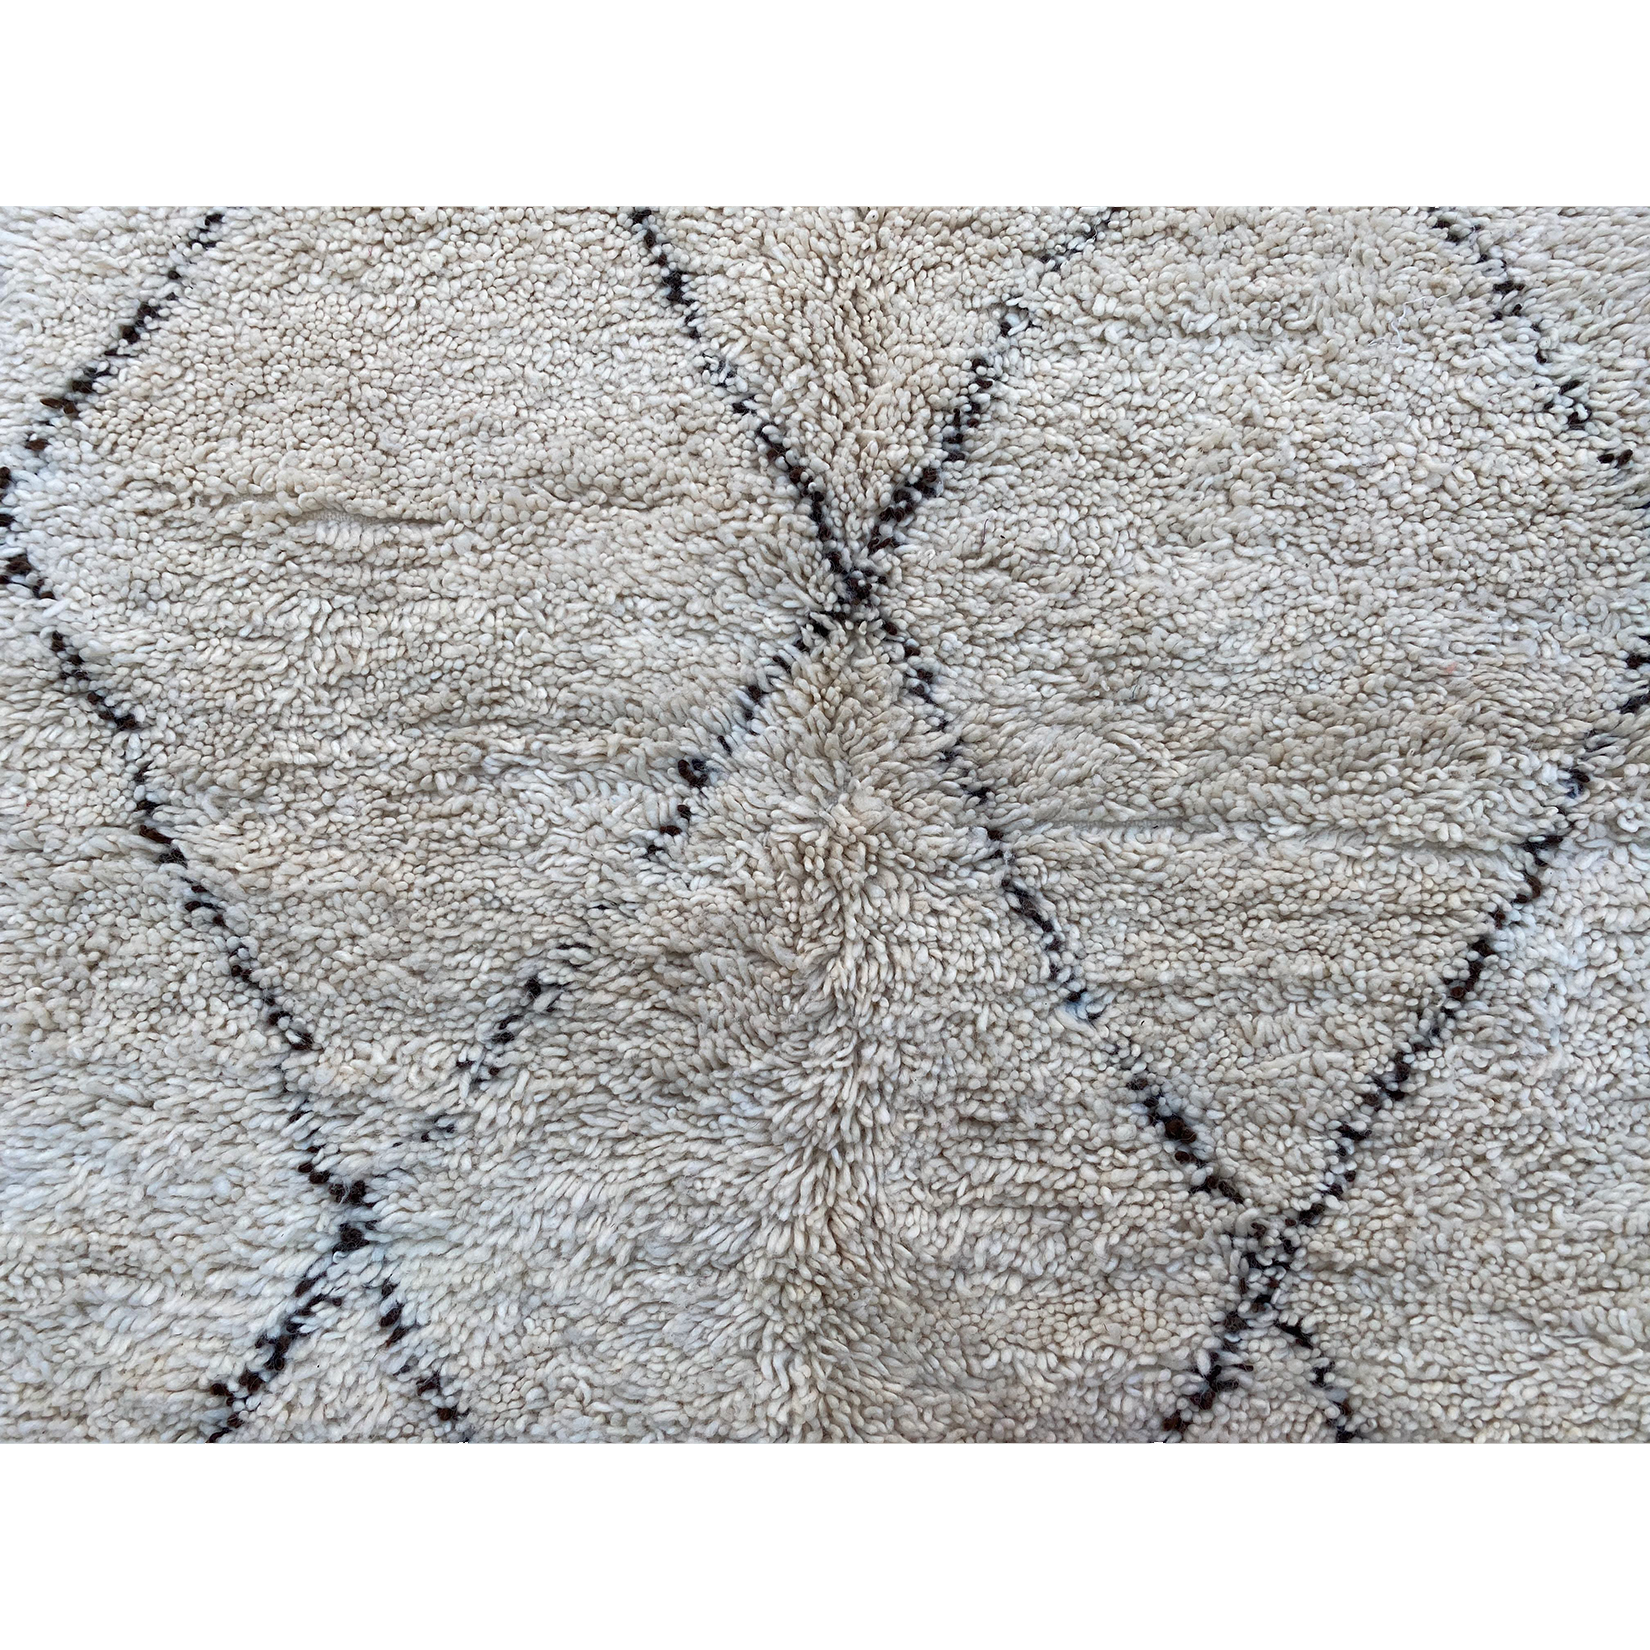 Plush white berber carpet with geometric pattern design - Kantara | Moroccan Rugs